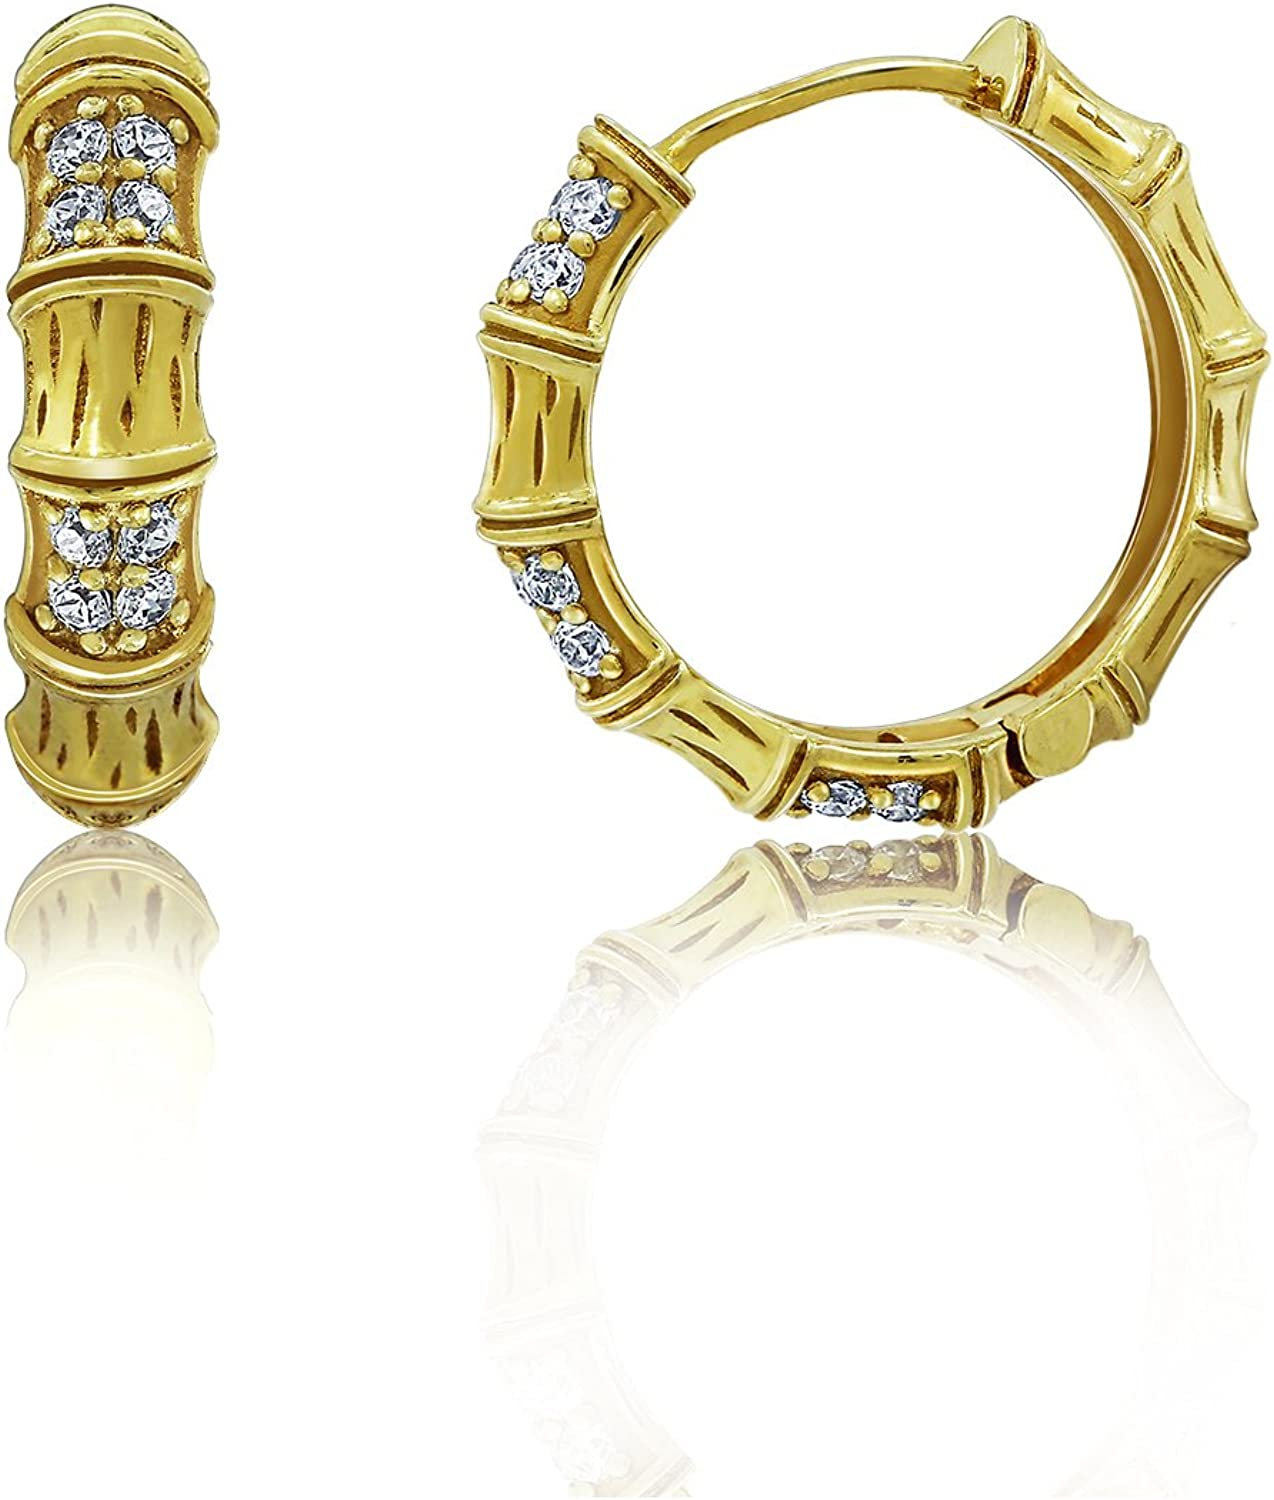 DIAMONBLISS 18K Yellow Gold Clad cheap Cubic Max 88% OFF Bamboo Textured Zirconia